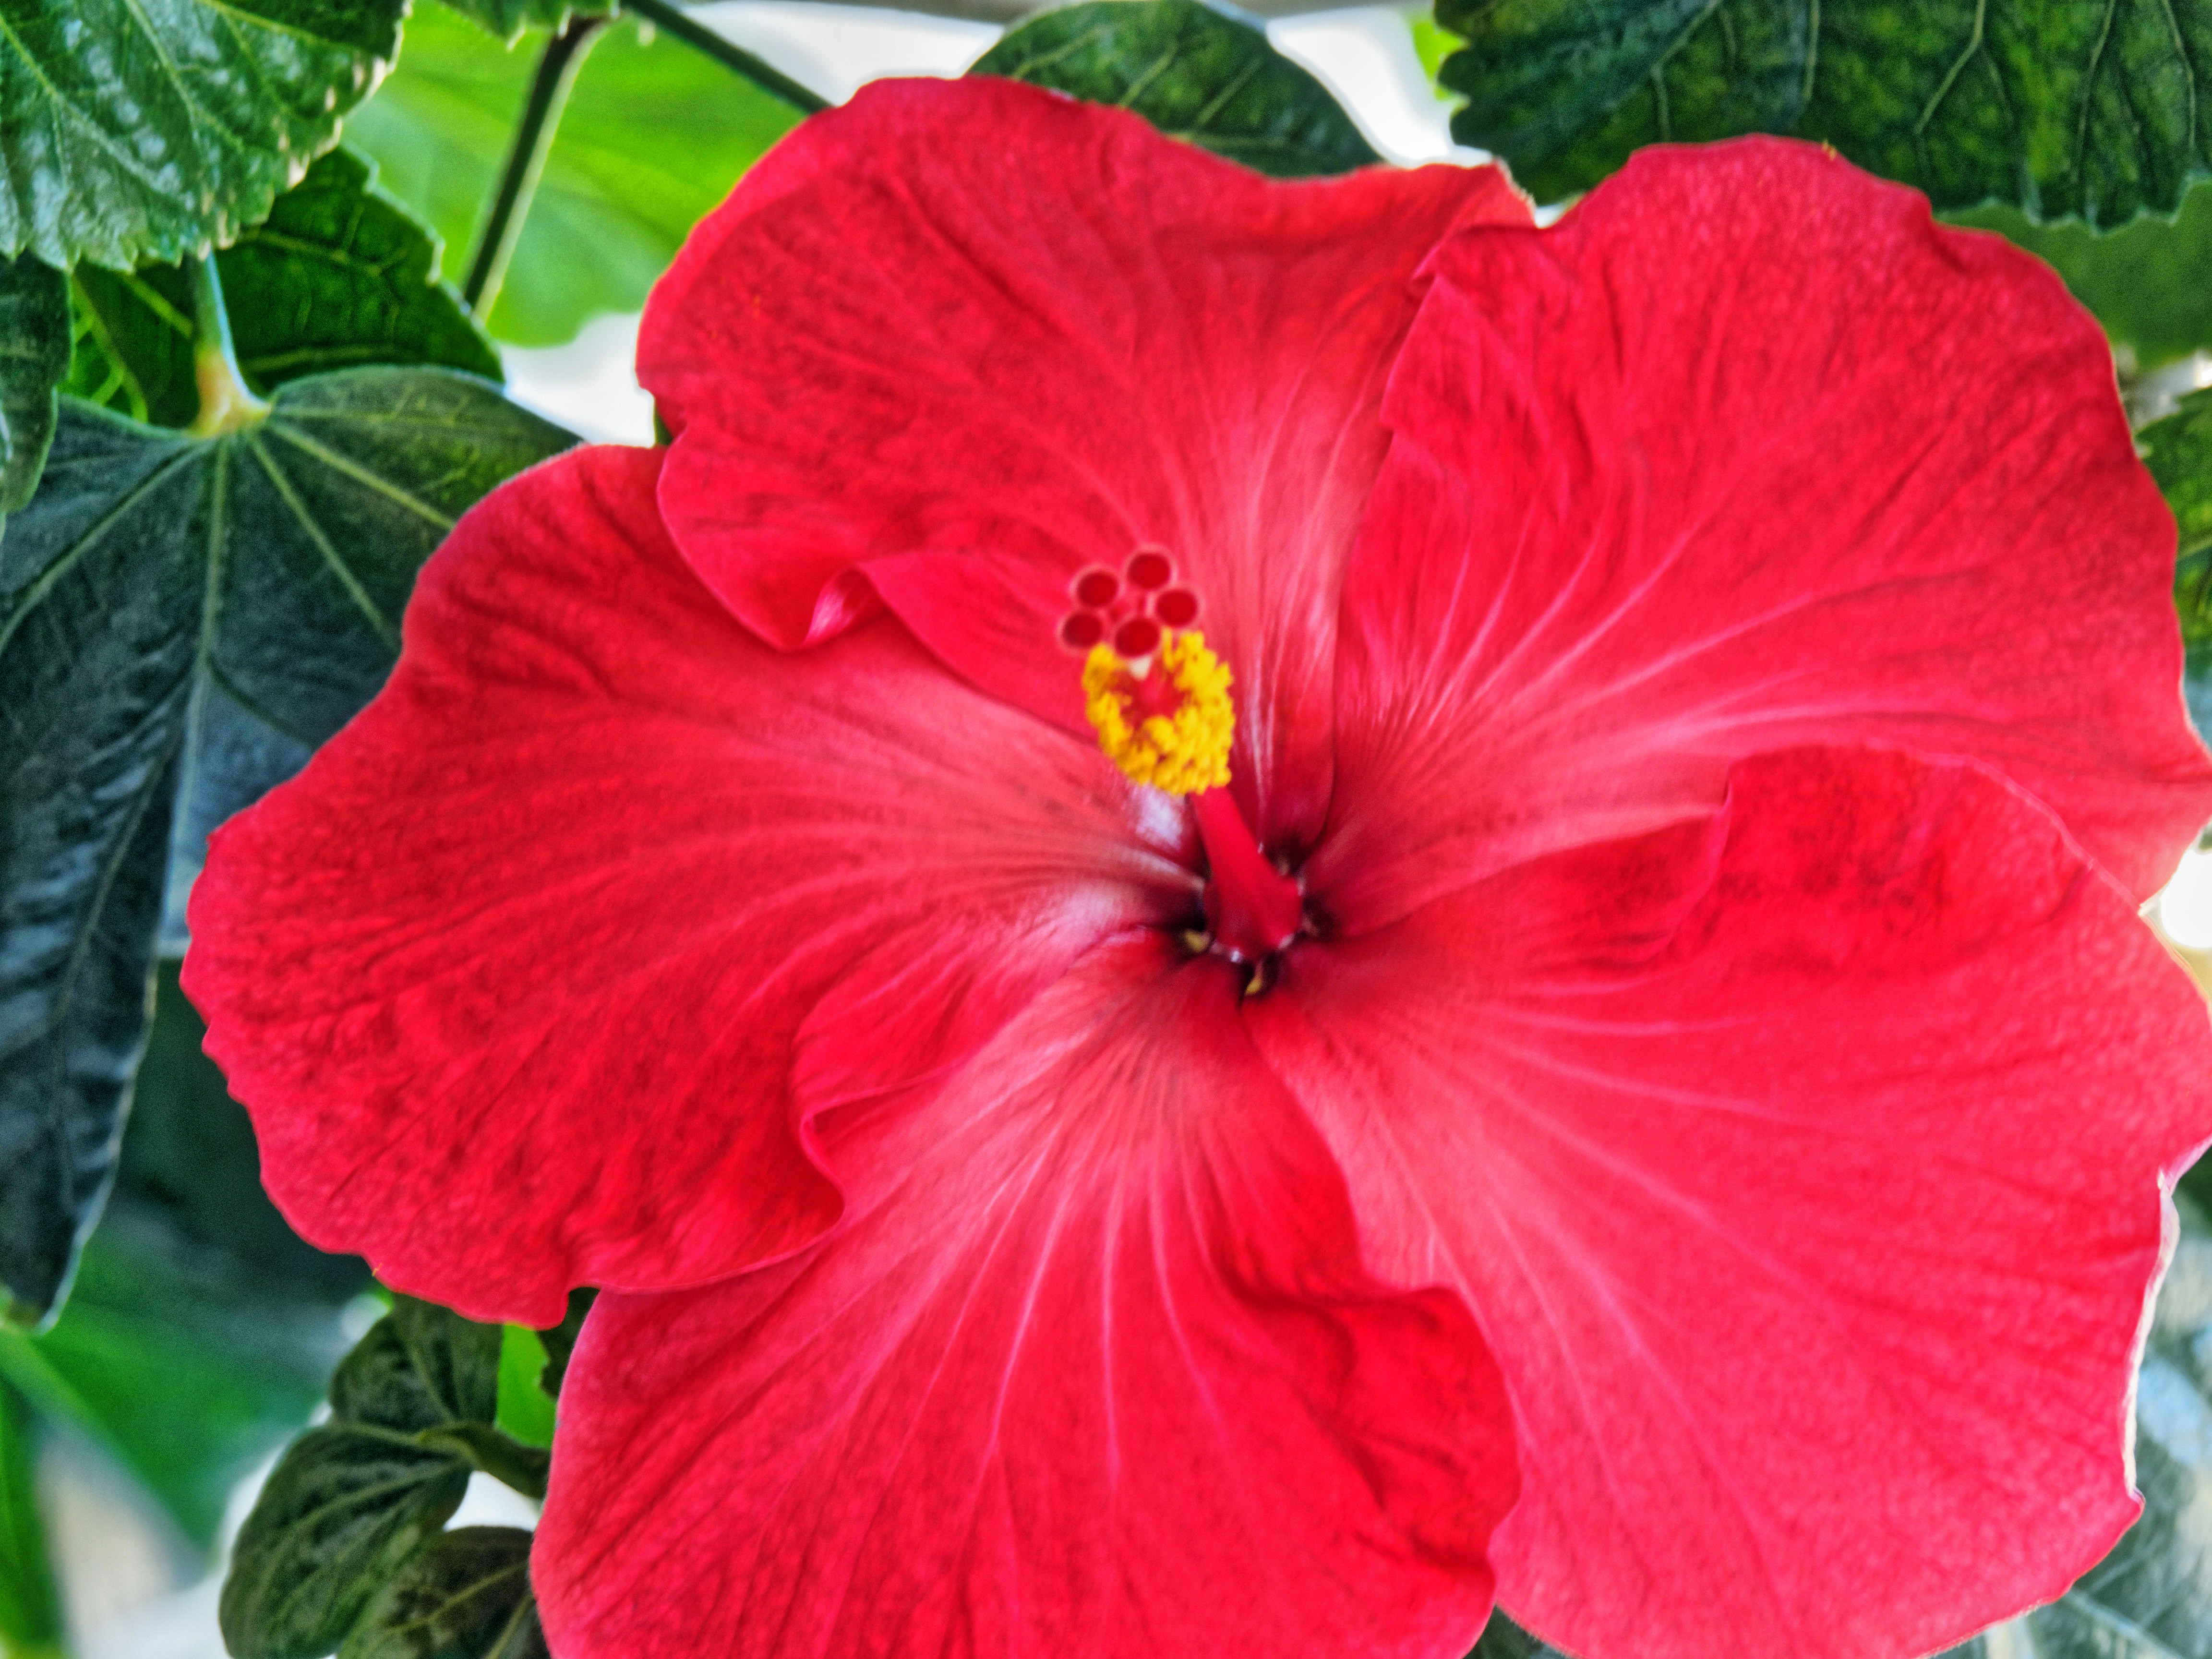 This should be Hibiscus-32.jpeg.  Is it missing?